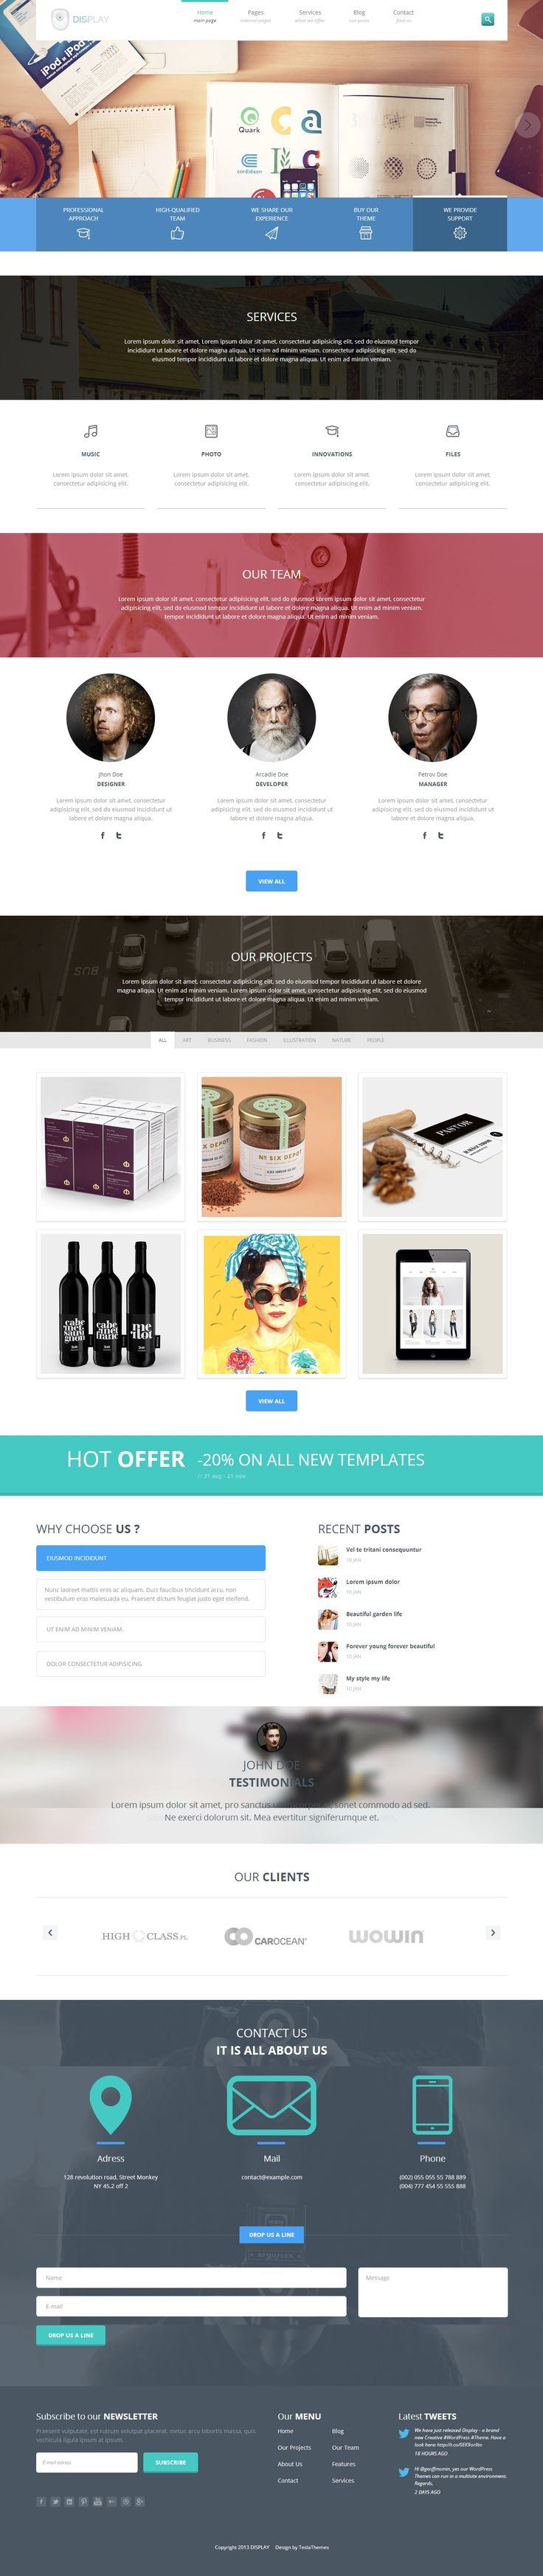 20+ Best Universal WordPress Themes #wordpress #awards